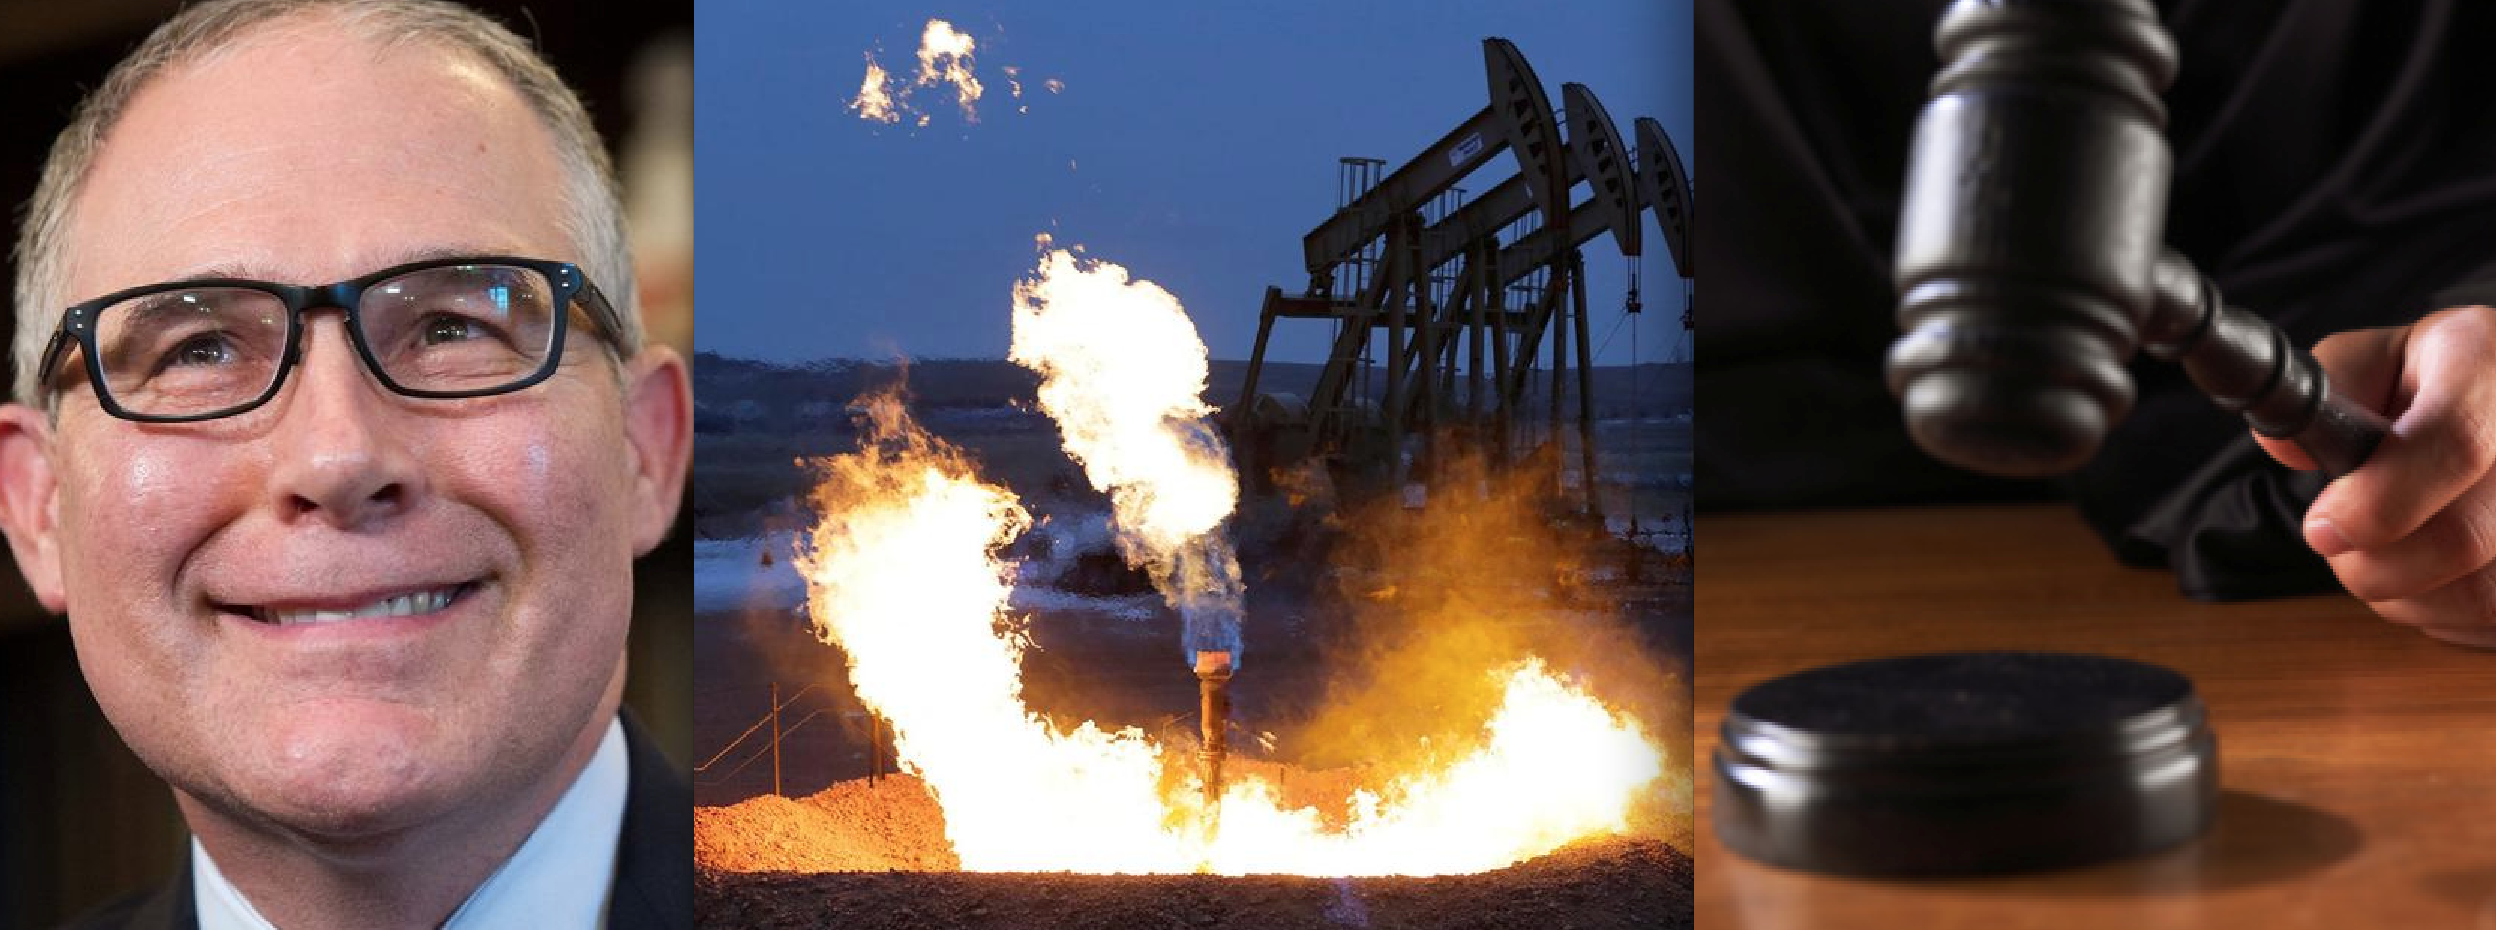 Appeals Court Shoots Down Trump Admin's Attempt to Halt Obama Oilfield Methane Rule